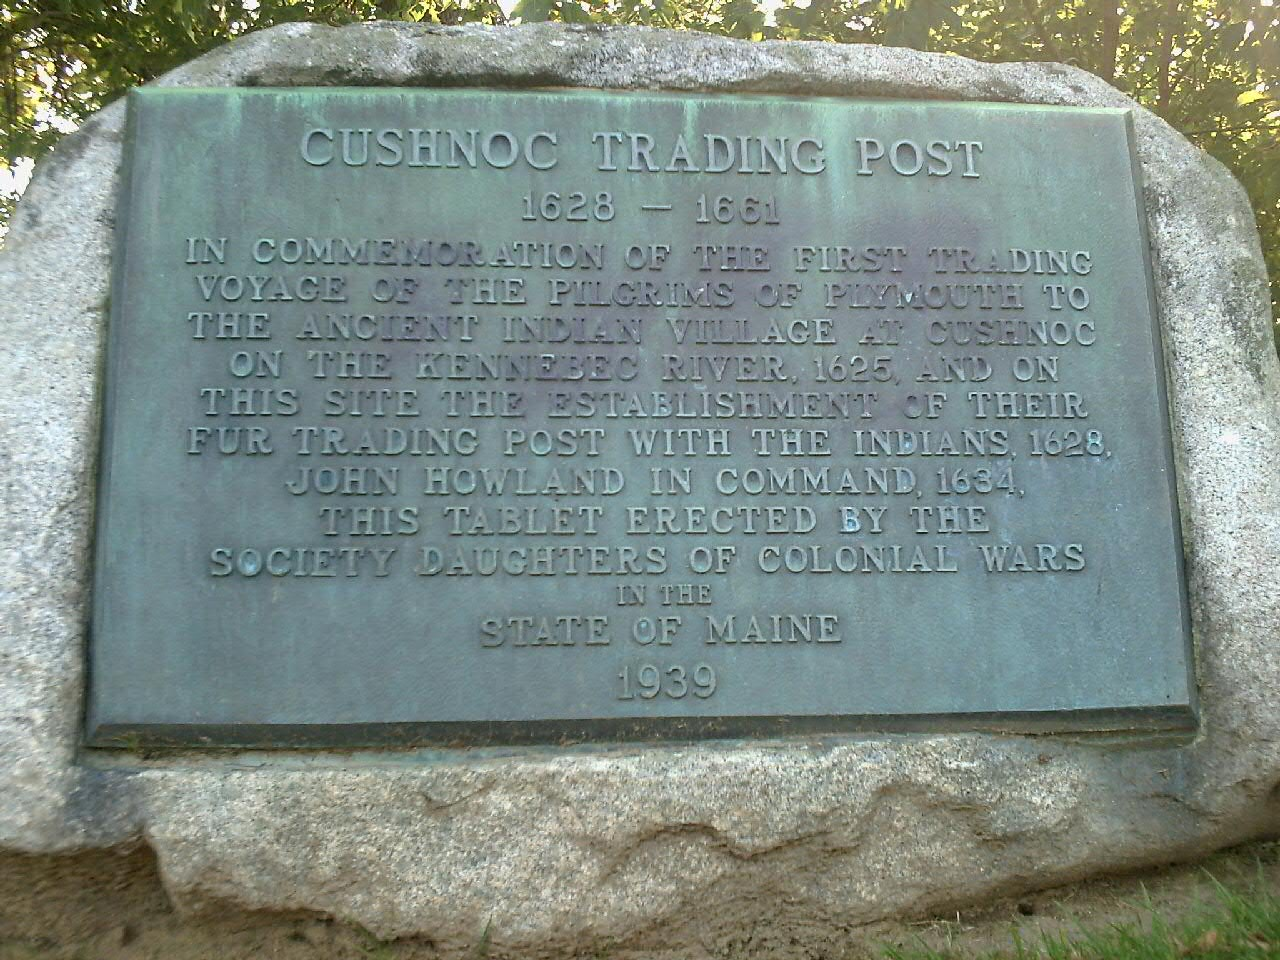 Closeup of the plaque